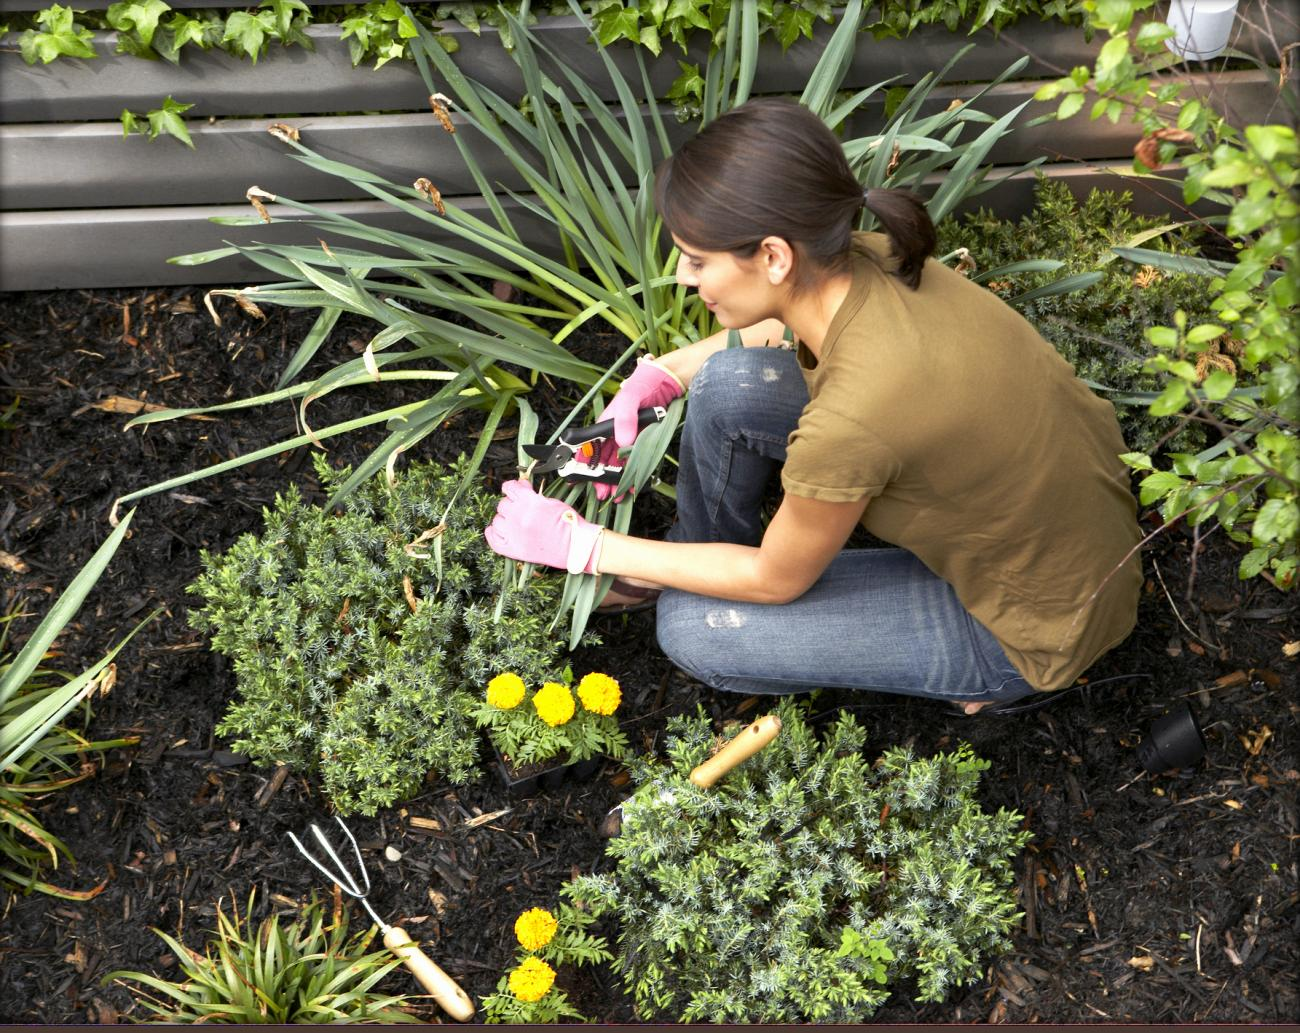 Landscaping for Low Maintenance-Thinkstock